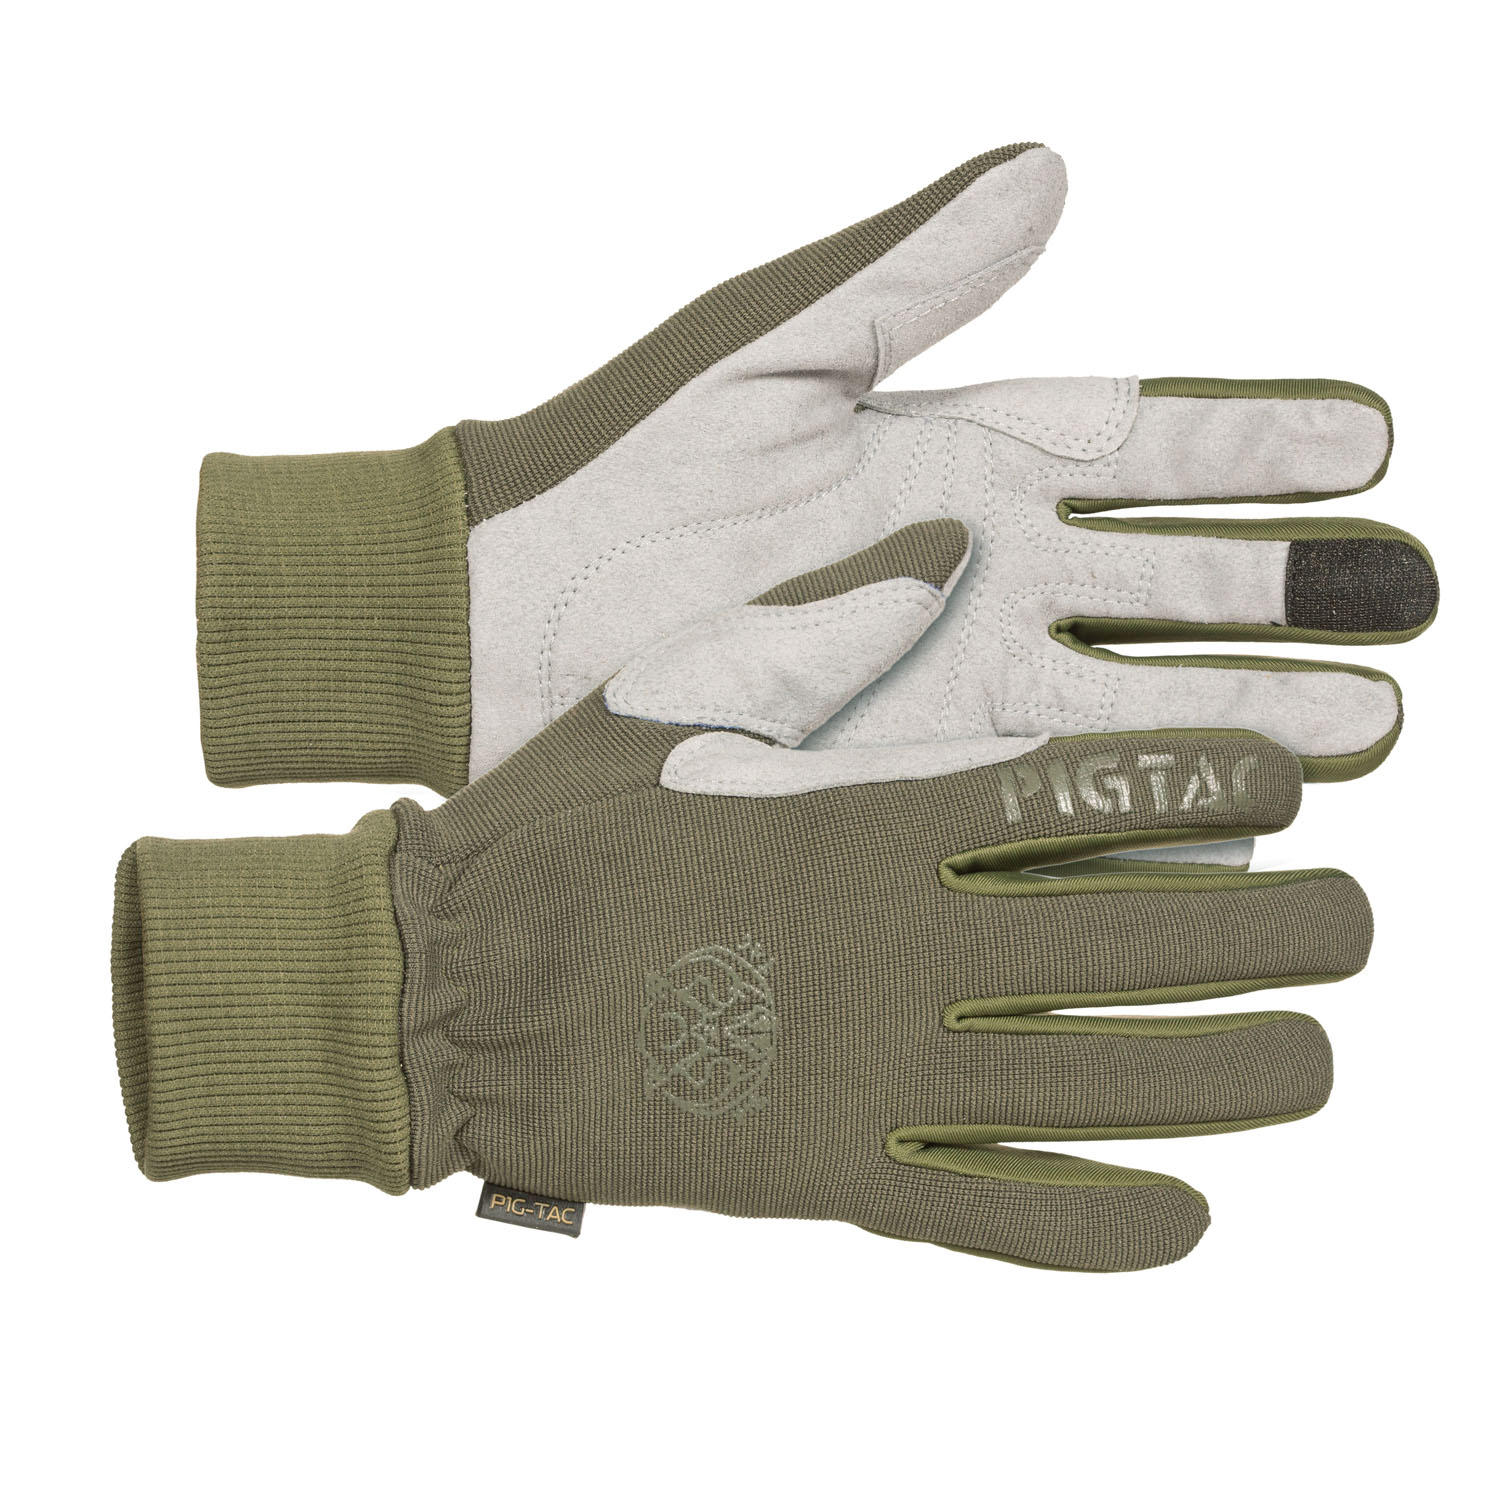 Demi-season field gloves